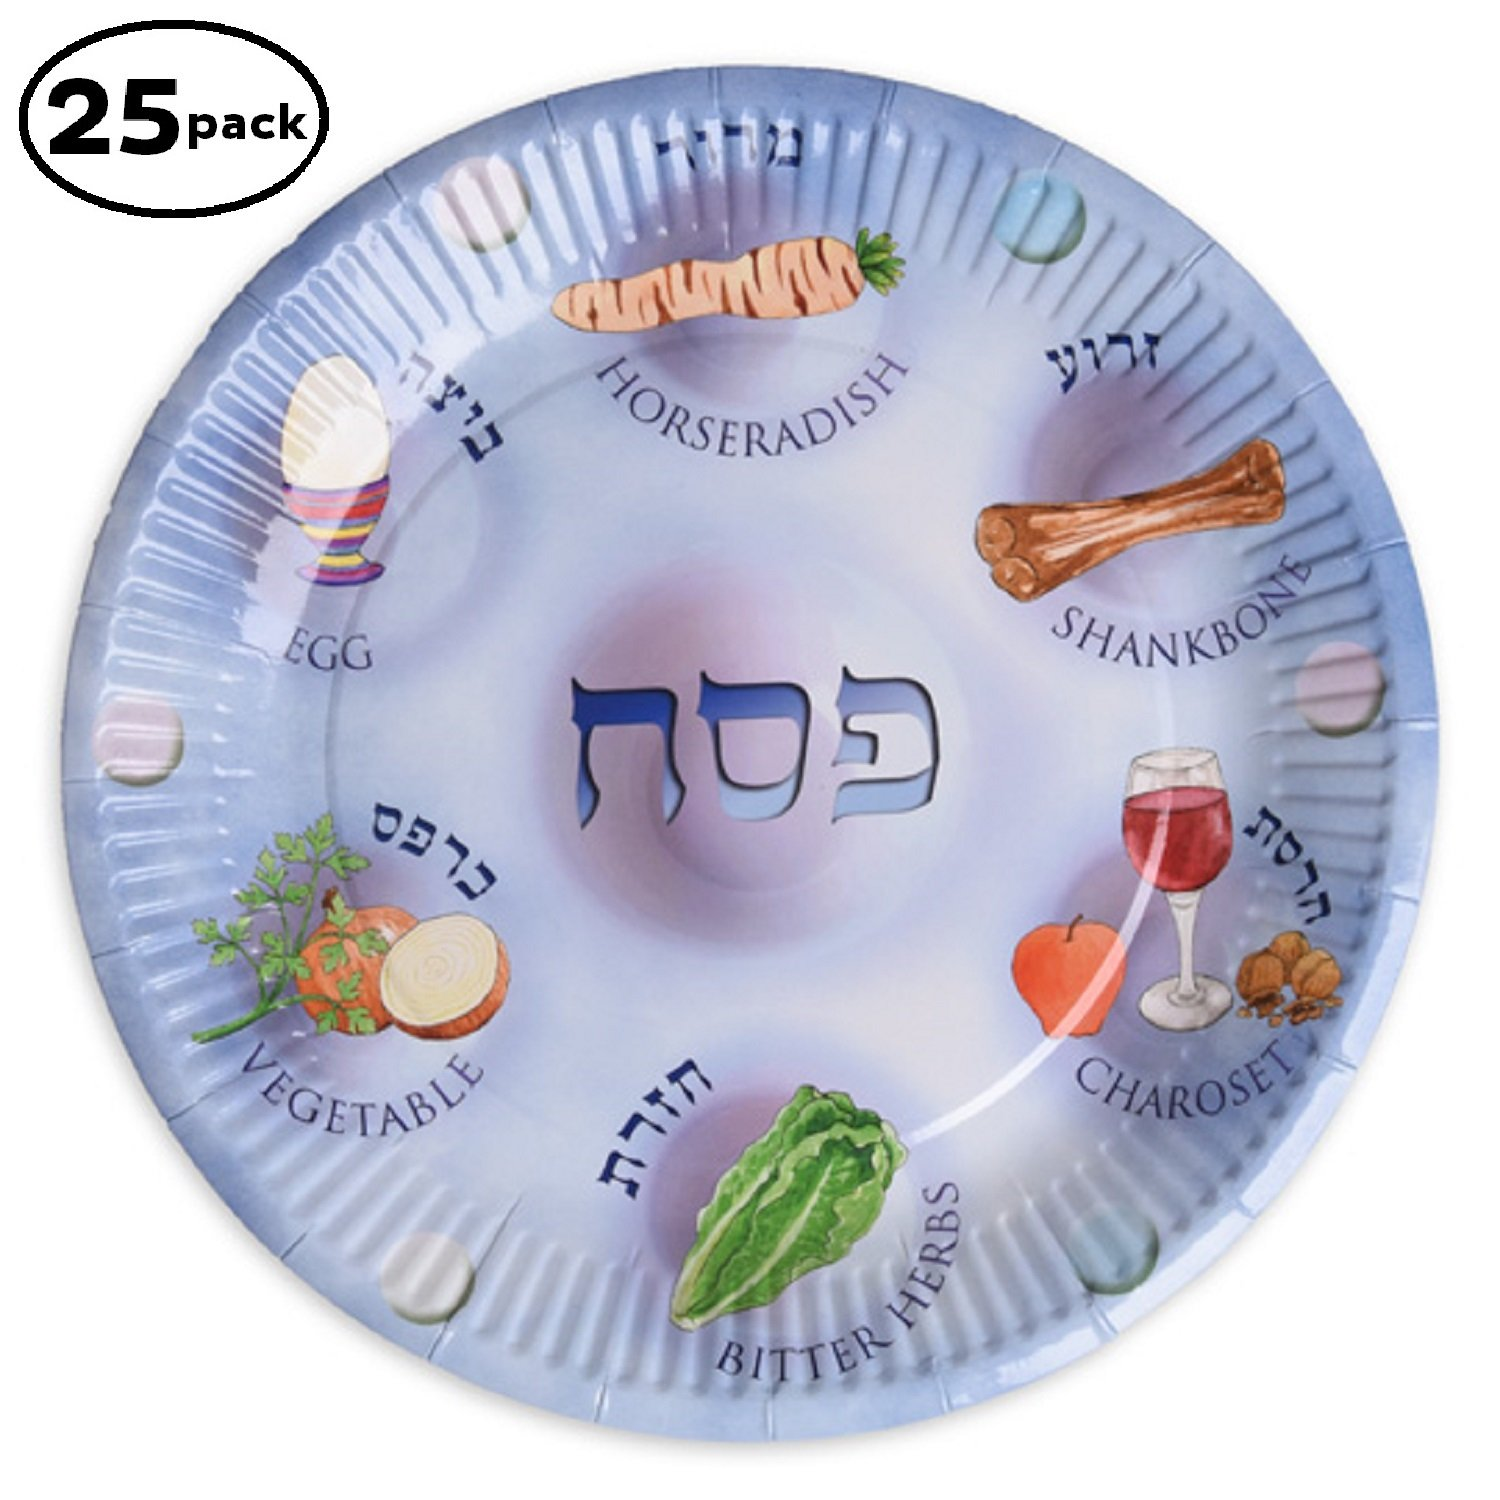 Paper plates for Passover 25 Paper Seder Plates Pesach plates for kids.  sc 1 st  Amazon.com & Best Rated in Seder Plates u0026 Helpful Customer Reviews - Amazon.com